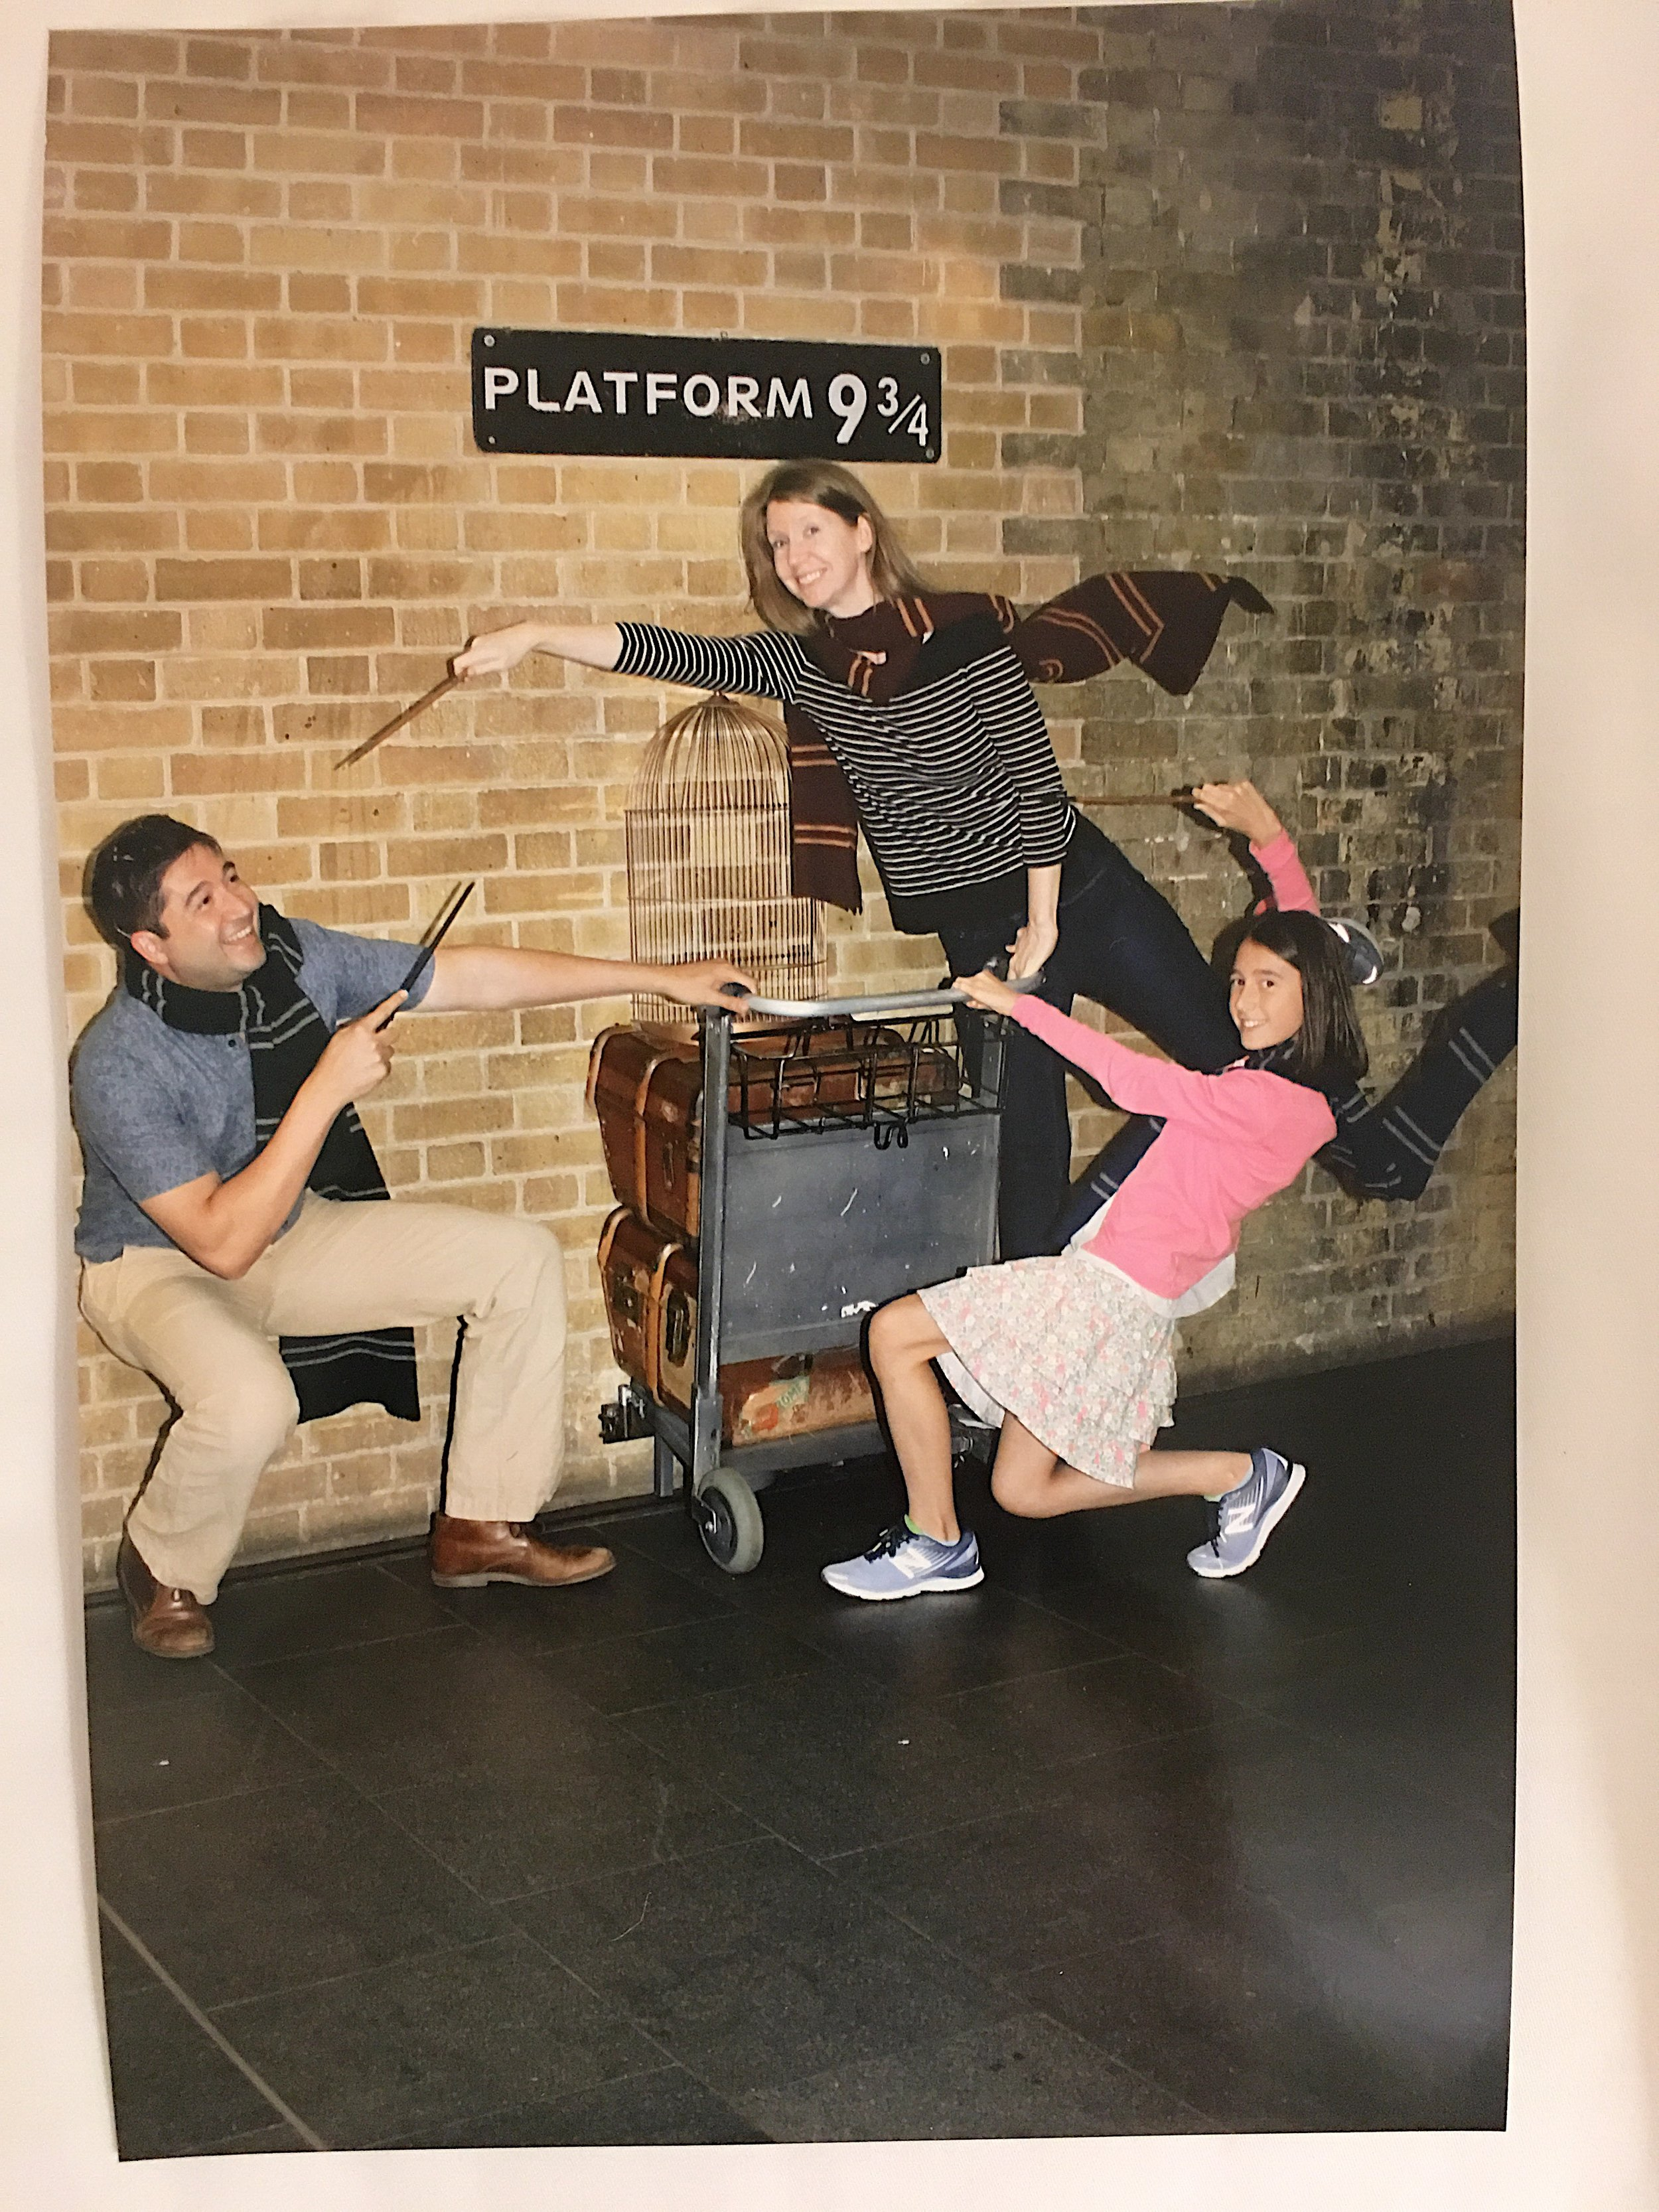 Photo taken by the friendly staff at Platform 9 3/4 at King's Cross Station